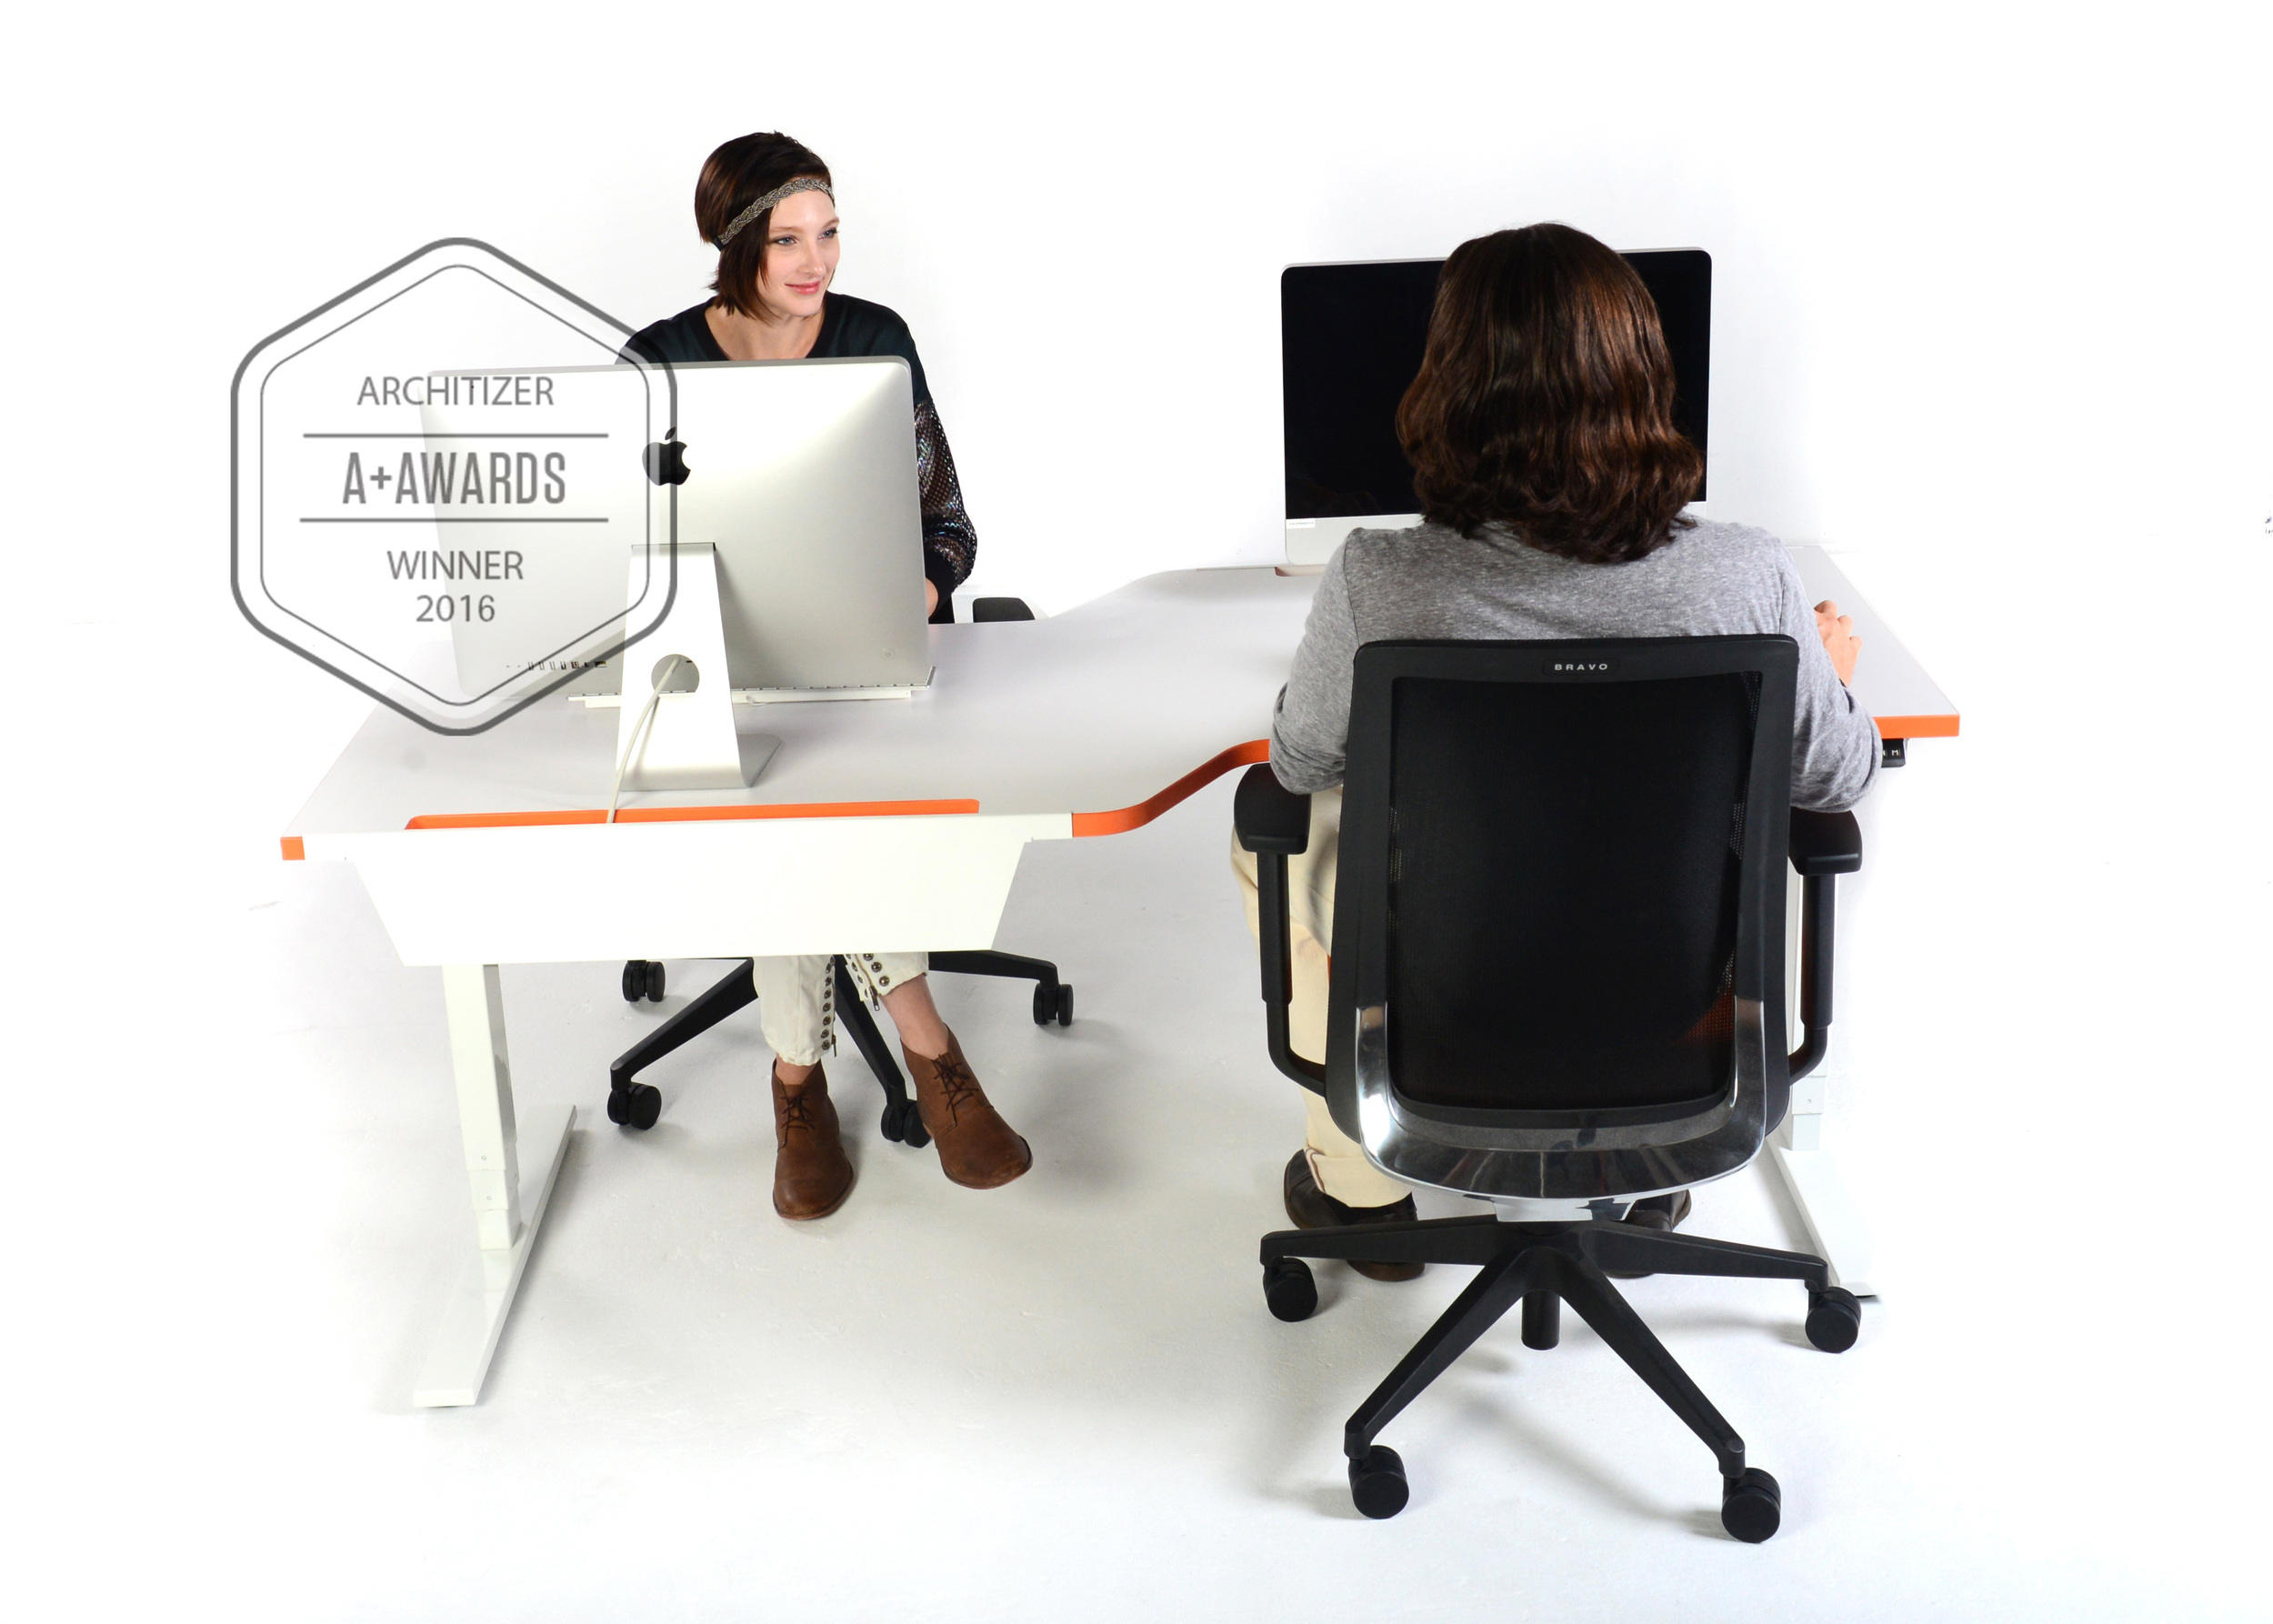 Tete-A-Tete ,is unique and the ultimate Pairing Station. Inspired by the workflow of software programers and environments where the 'working in pairs' is indispensable,David Winston developed a desk that allows a dual team to work from an ergonomic position.   For pricing and details, please contact your preferred dealer or info@scale1to1.com